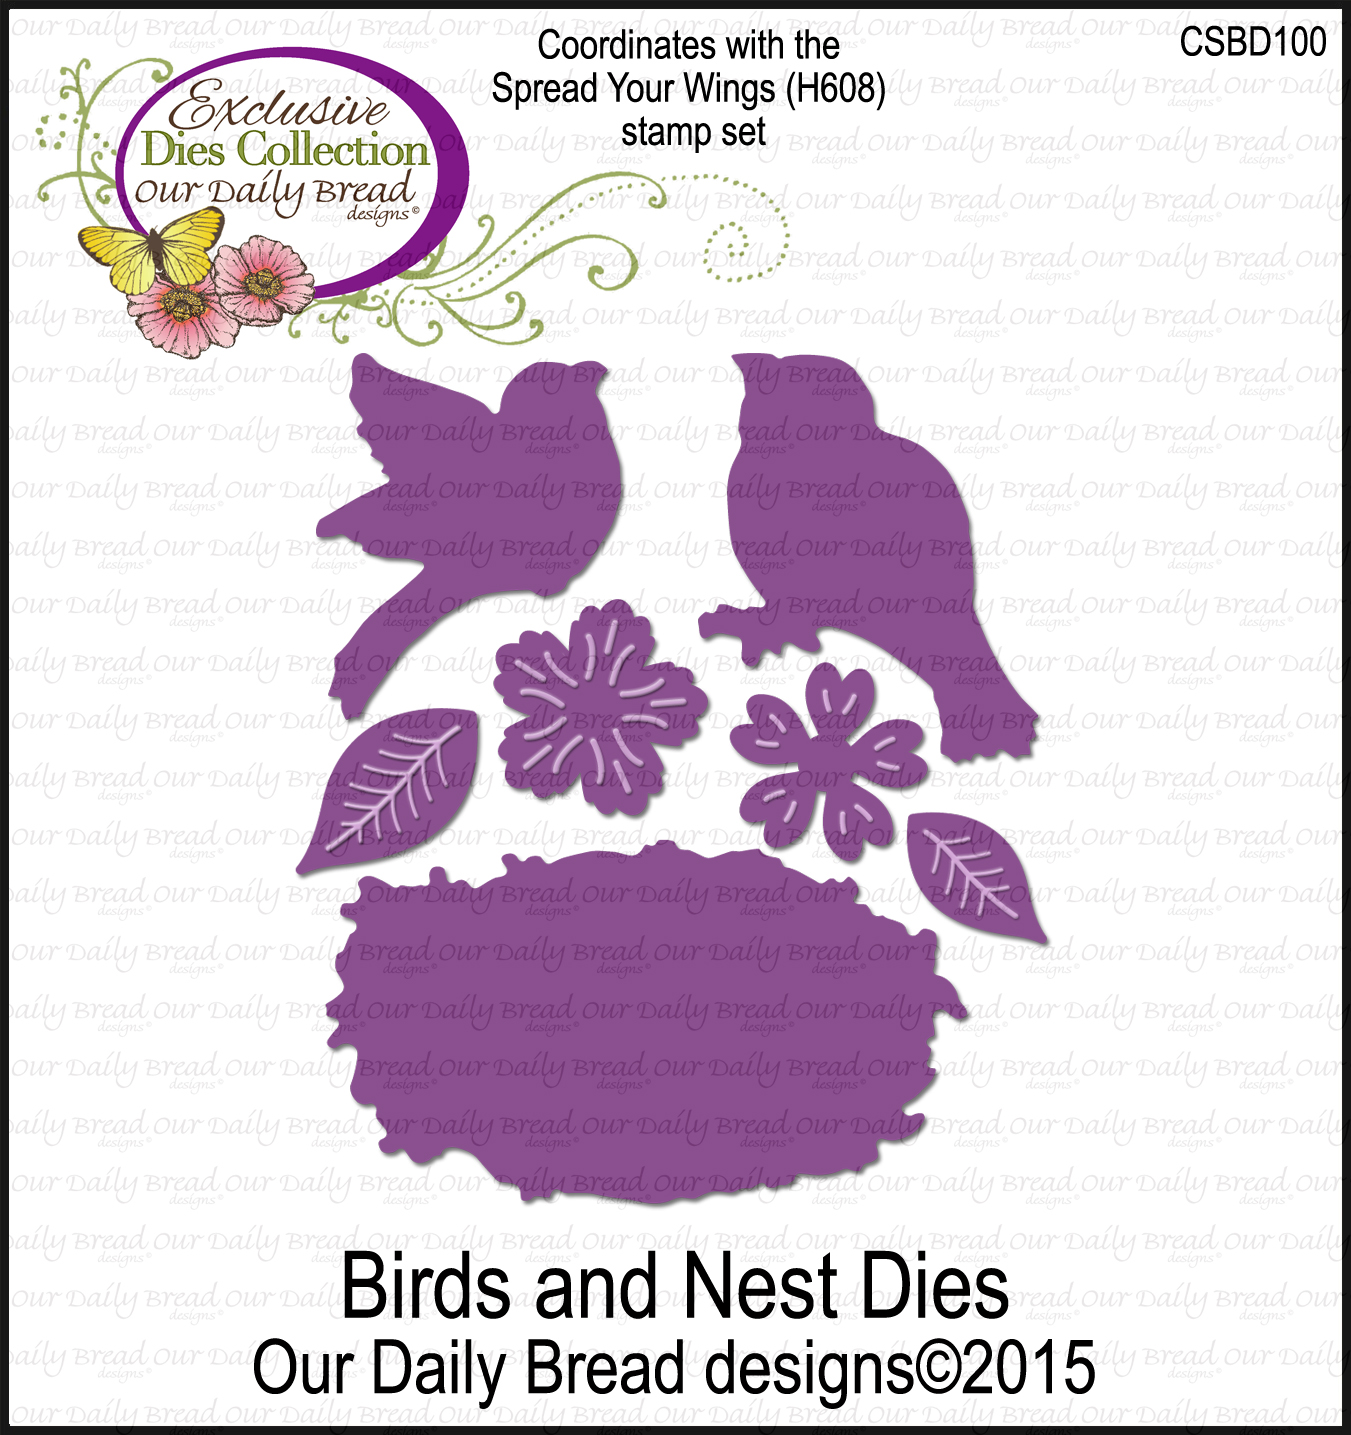 Our Daily Bread Designs Custom Birds and Nest Dies